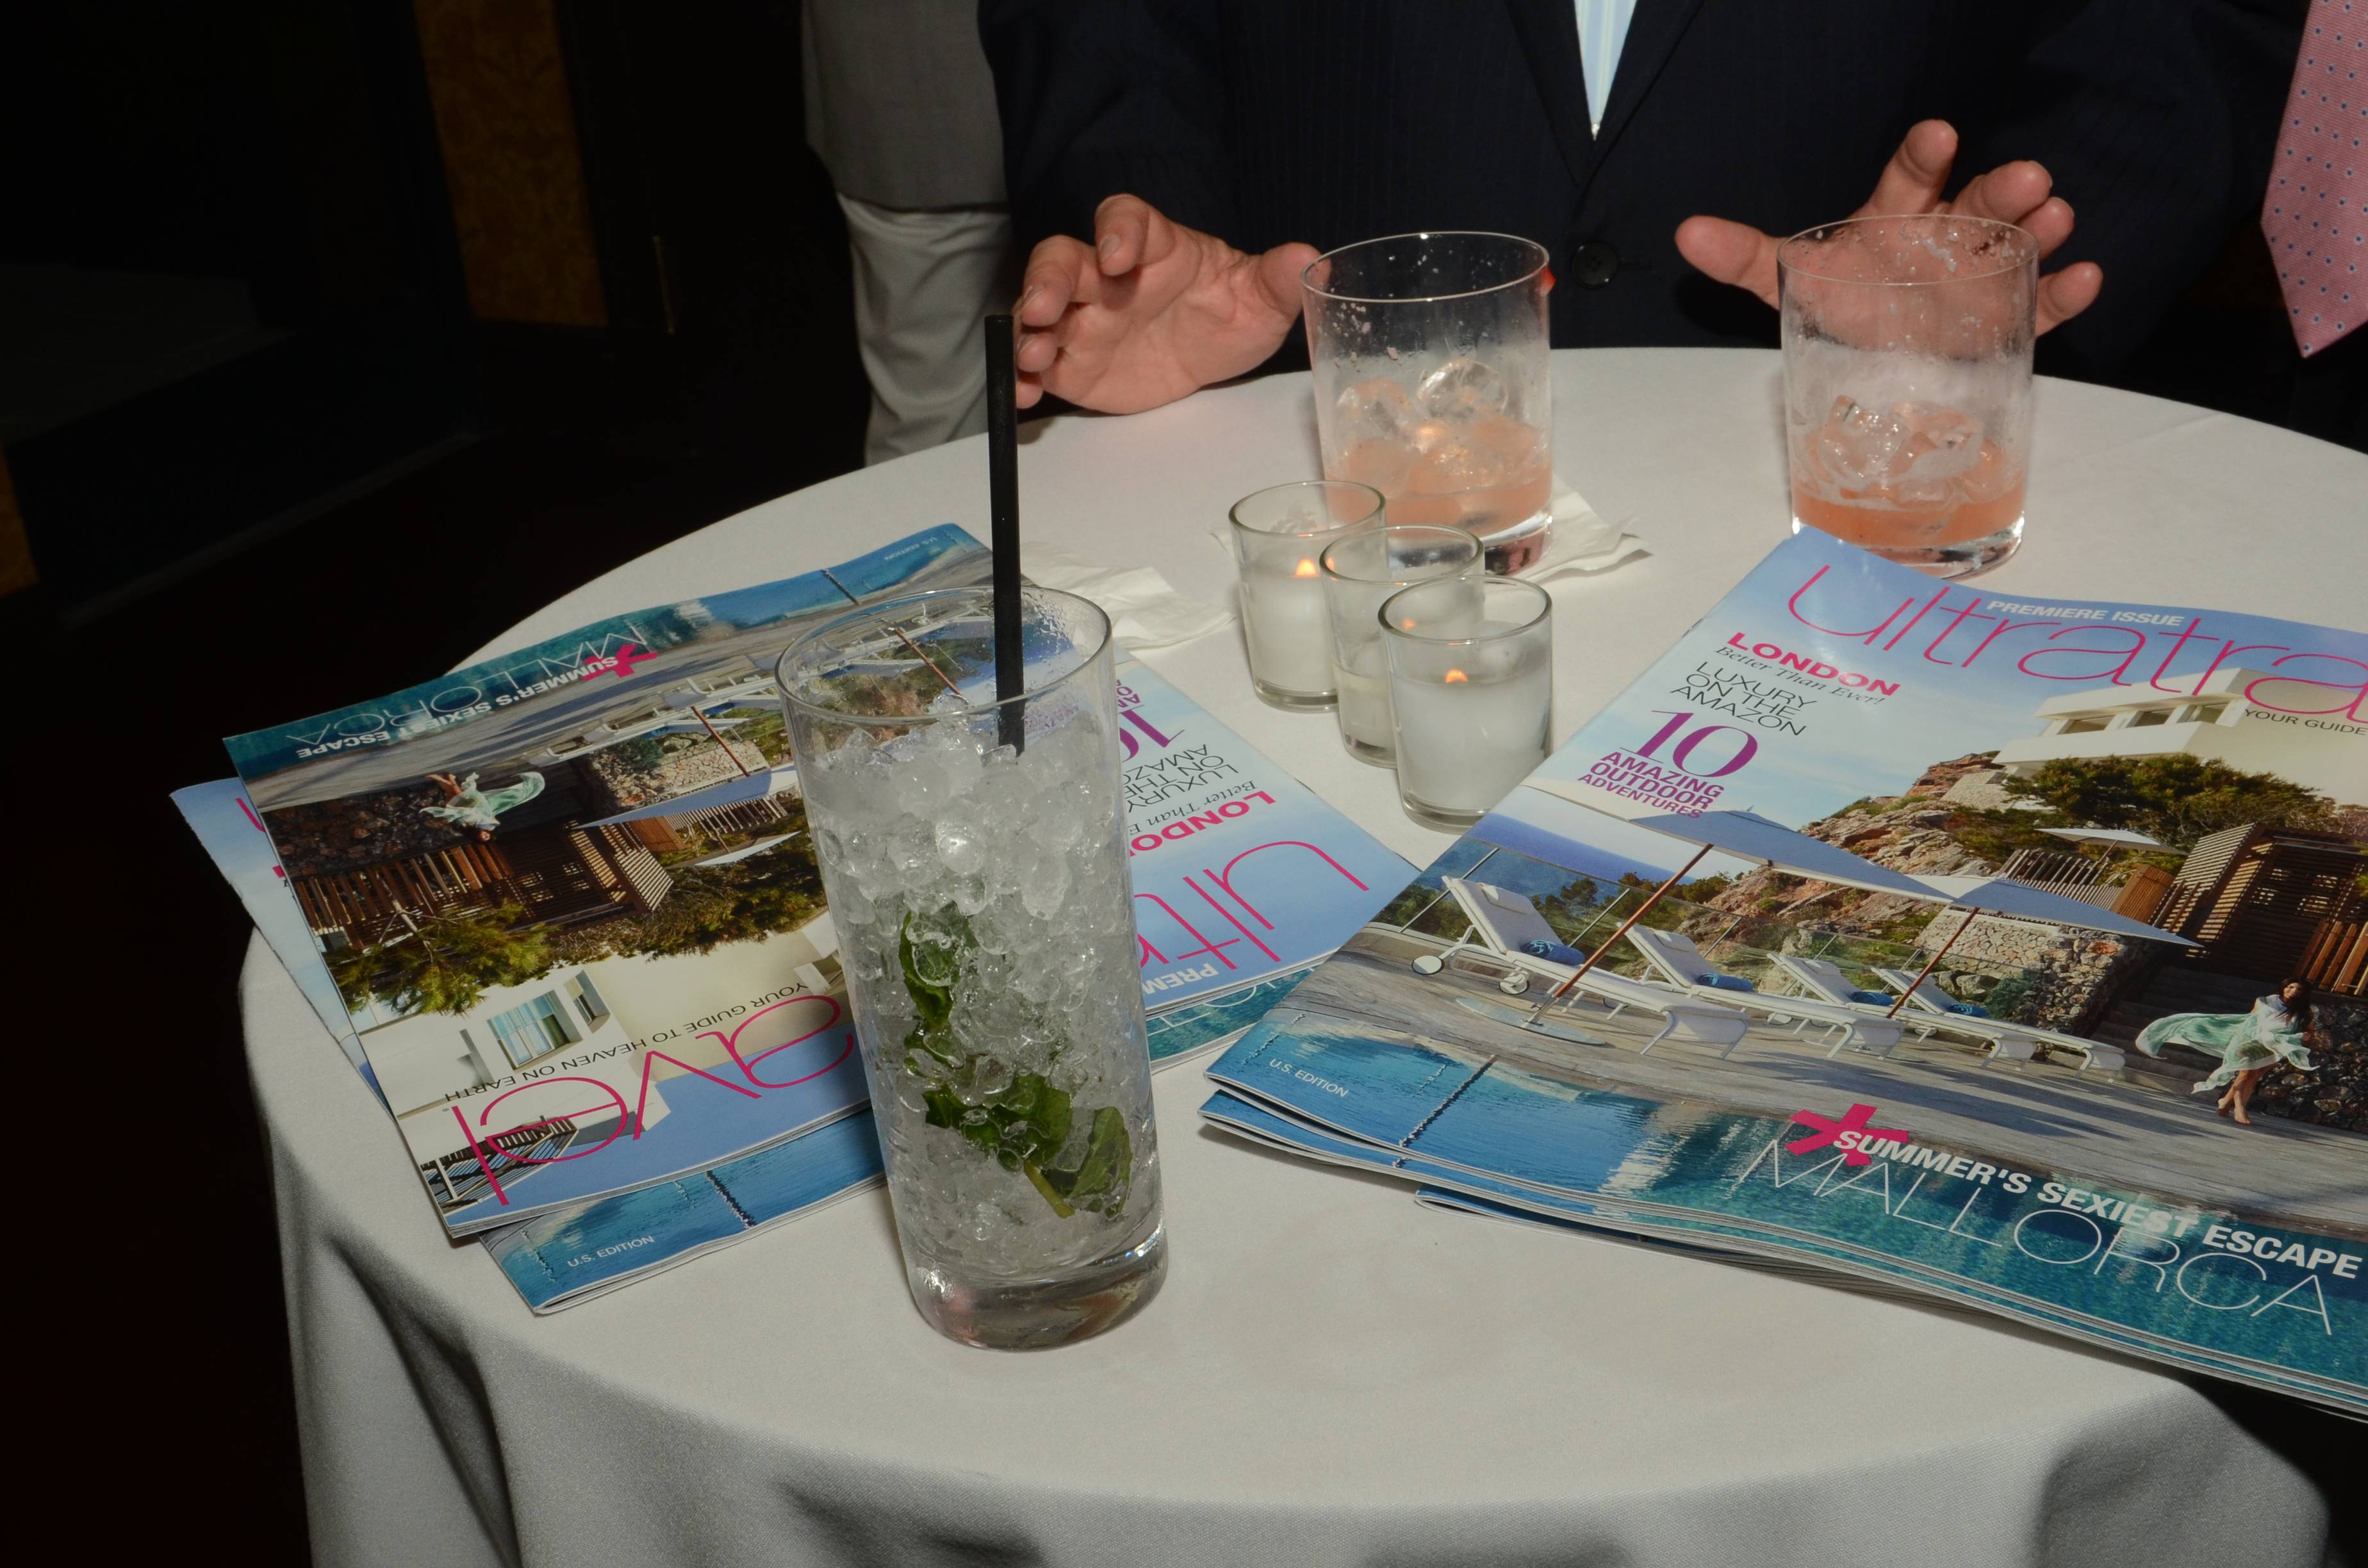 Atmosphere at U.S. Launch of Ultratravel Magazine